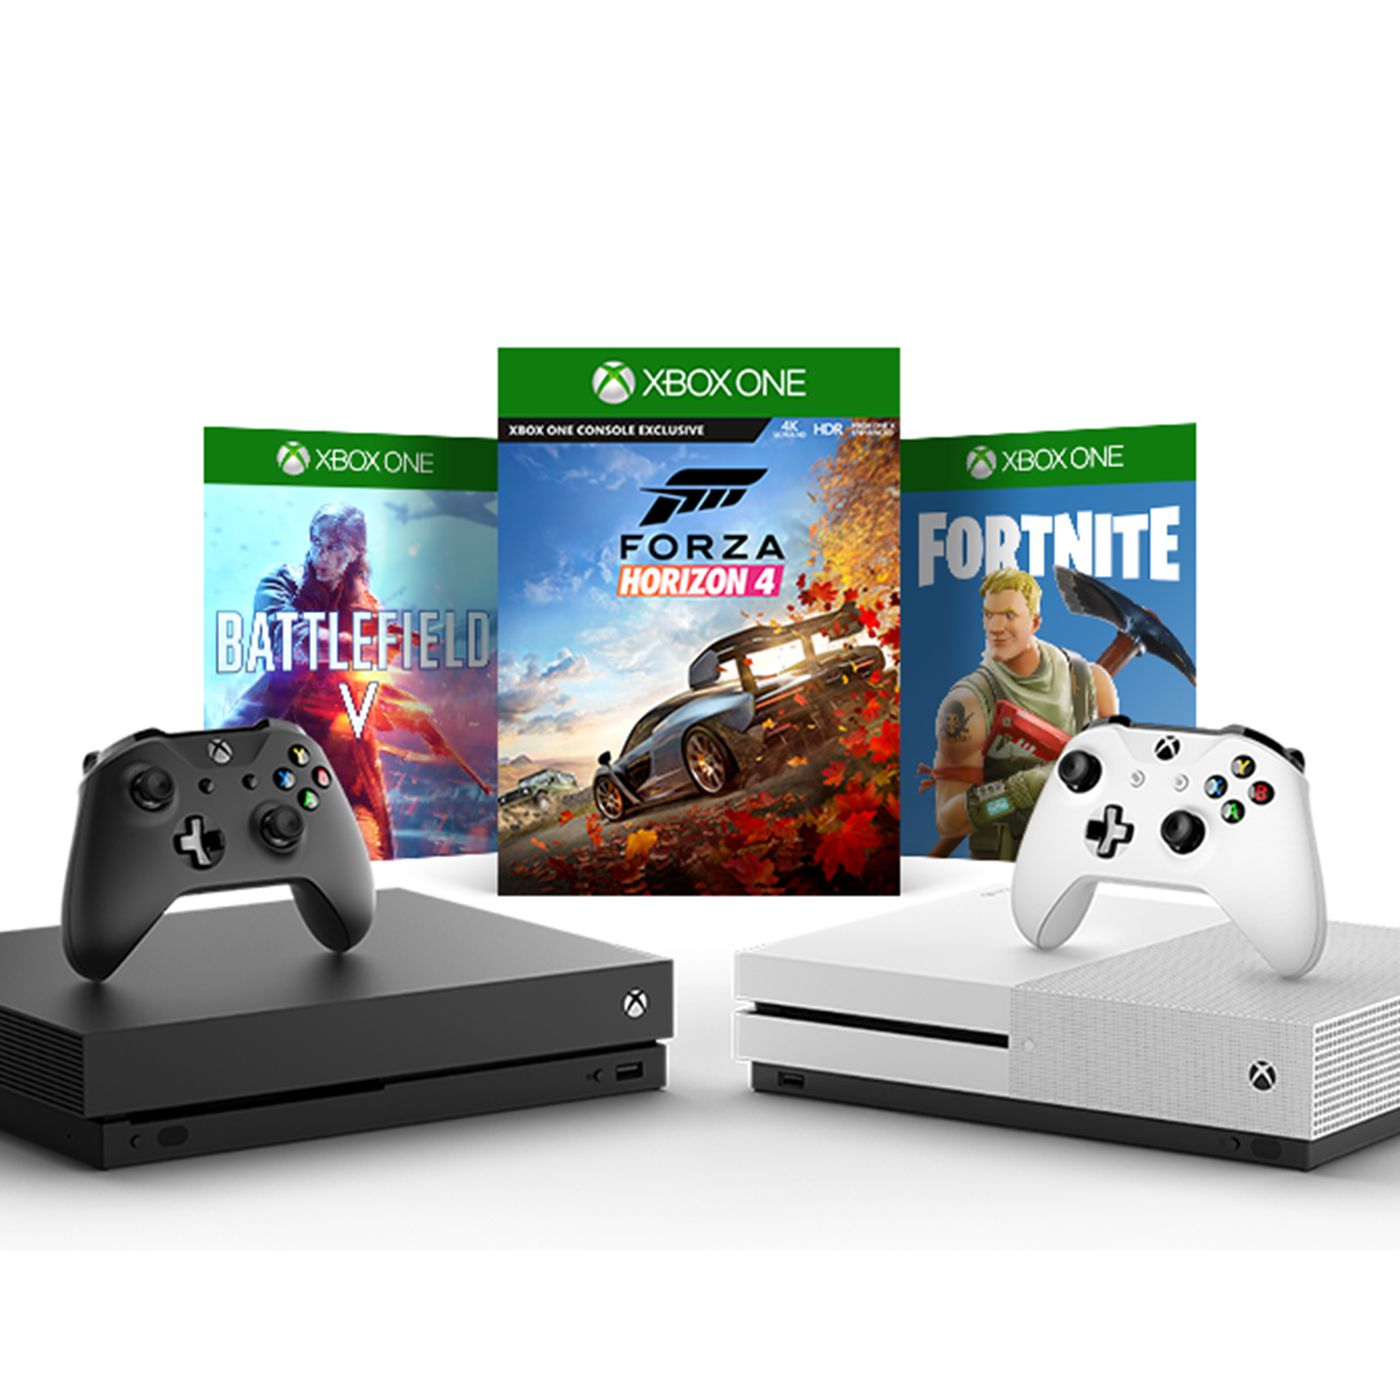 All Xbox One Fortnite Bundle Xbox One Bundles Are On Sale For 50 Off At Amazon Best Buy And More Polygon